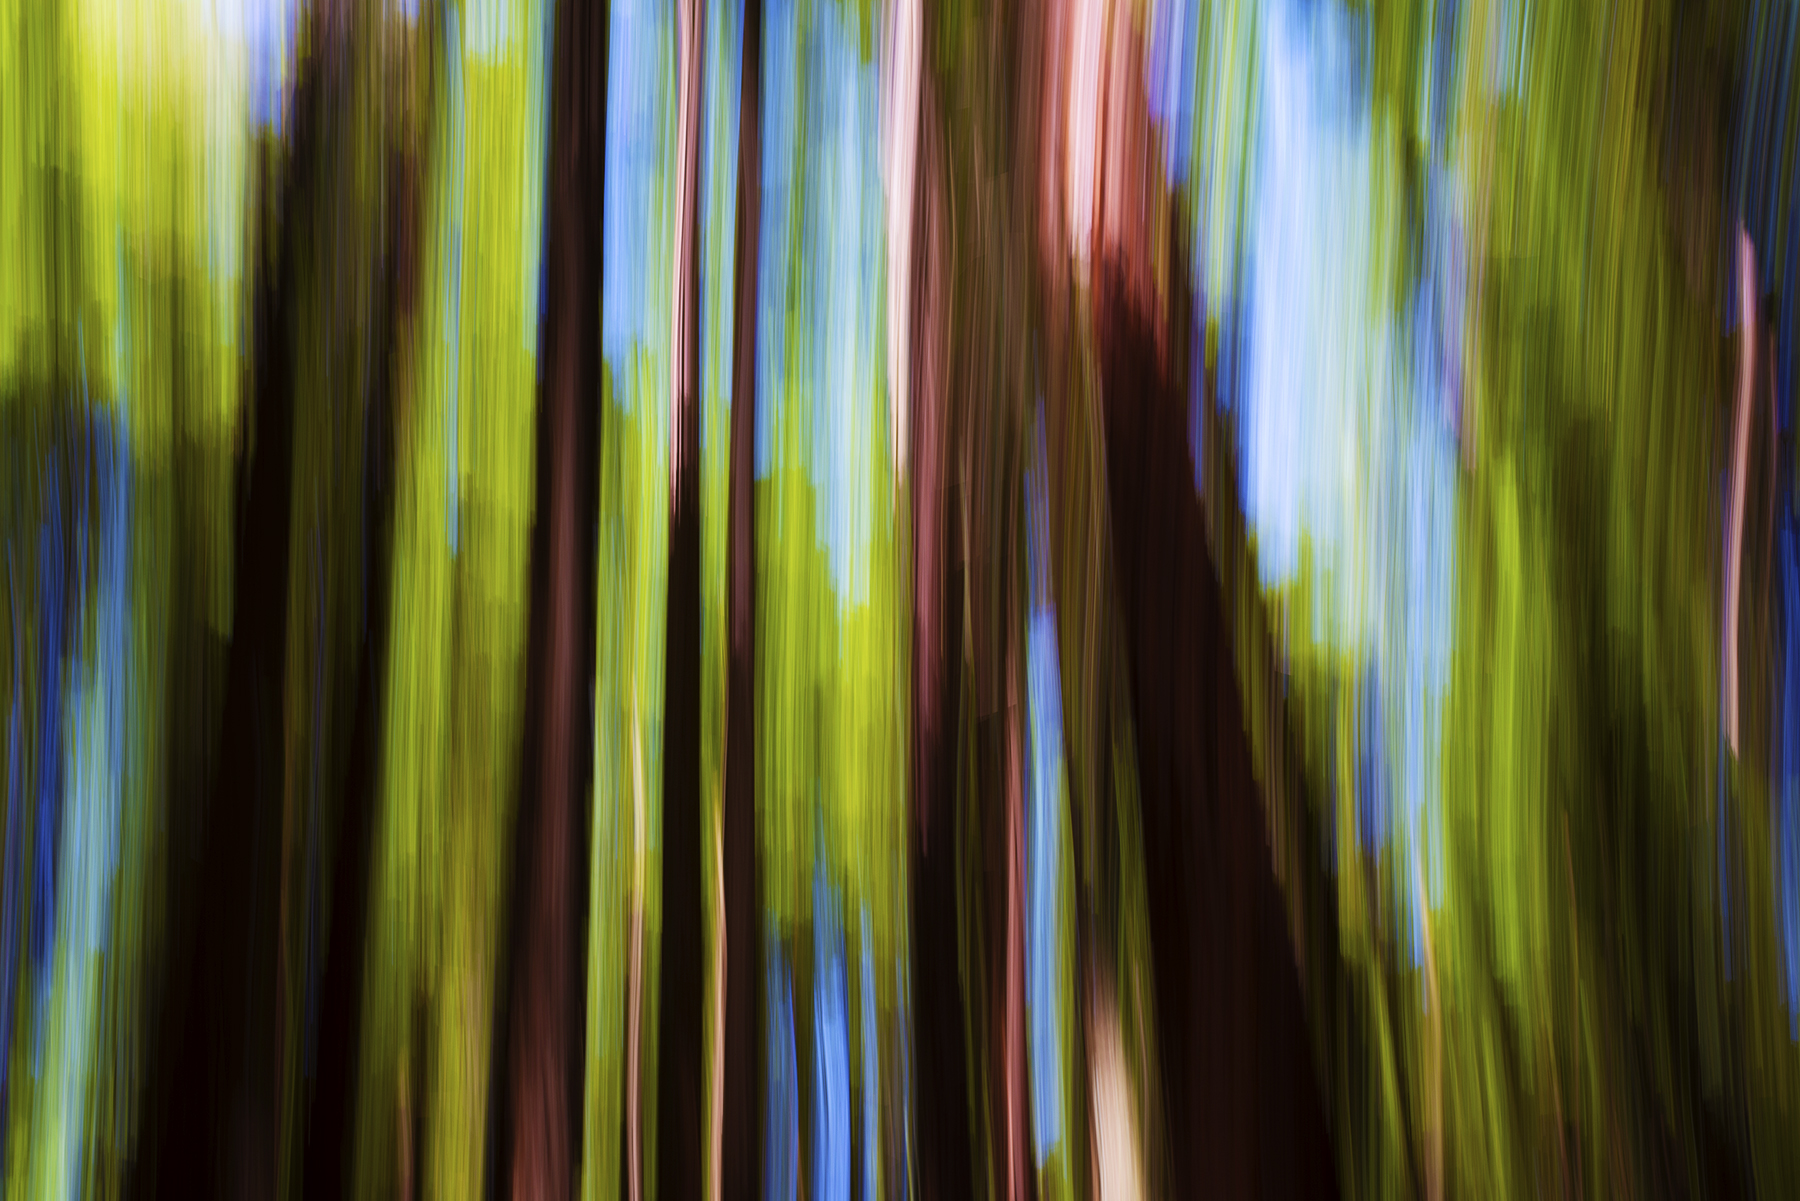 Redwood, Rotorua, New Zealand. A Limited Edition Fine Art Landscape Photograph by Richard Hume